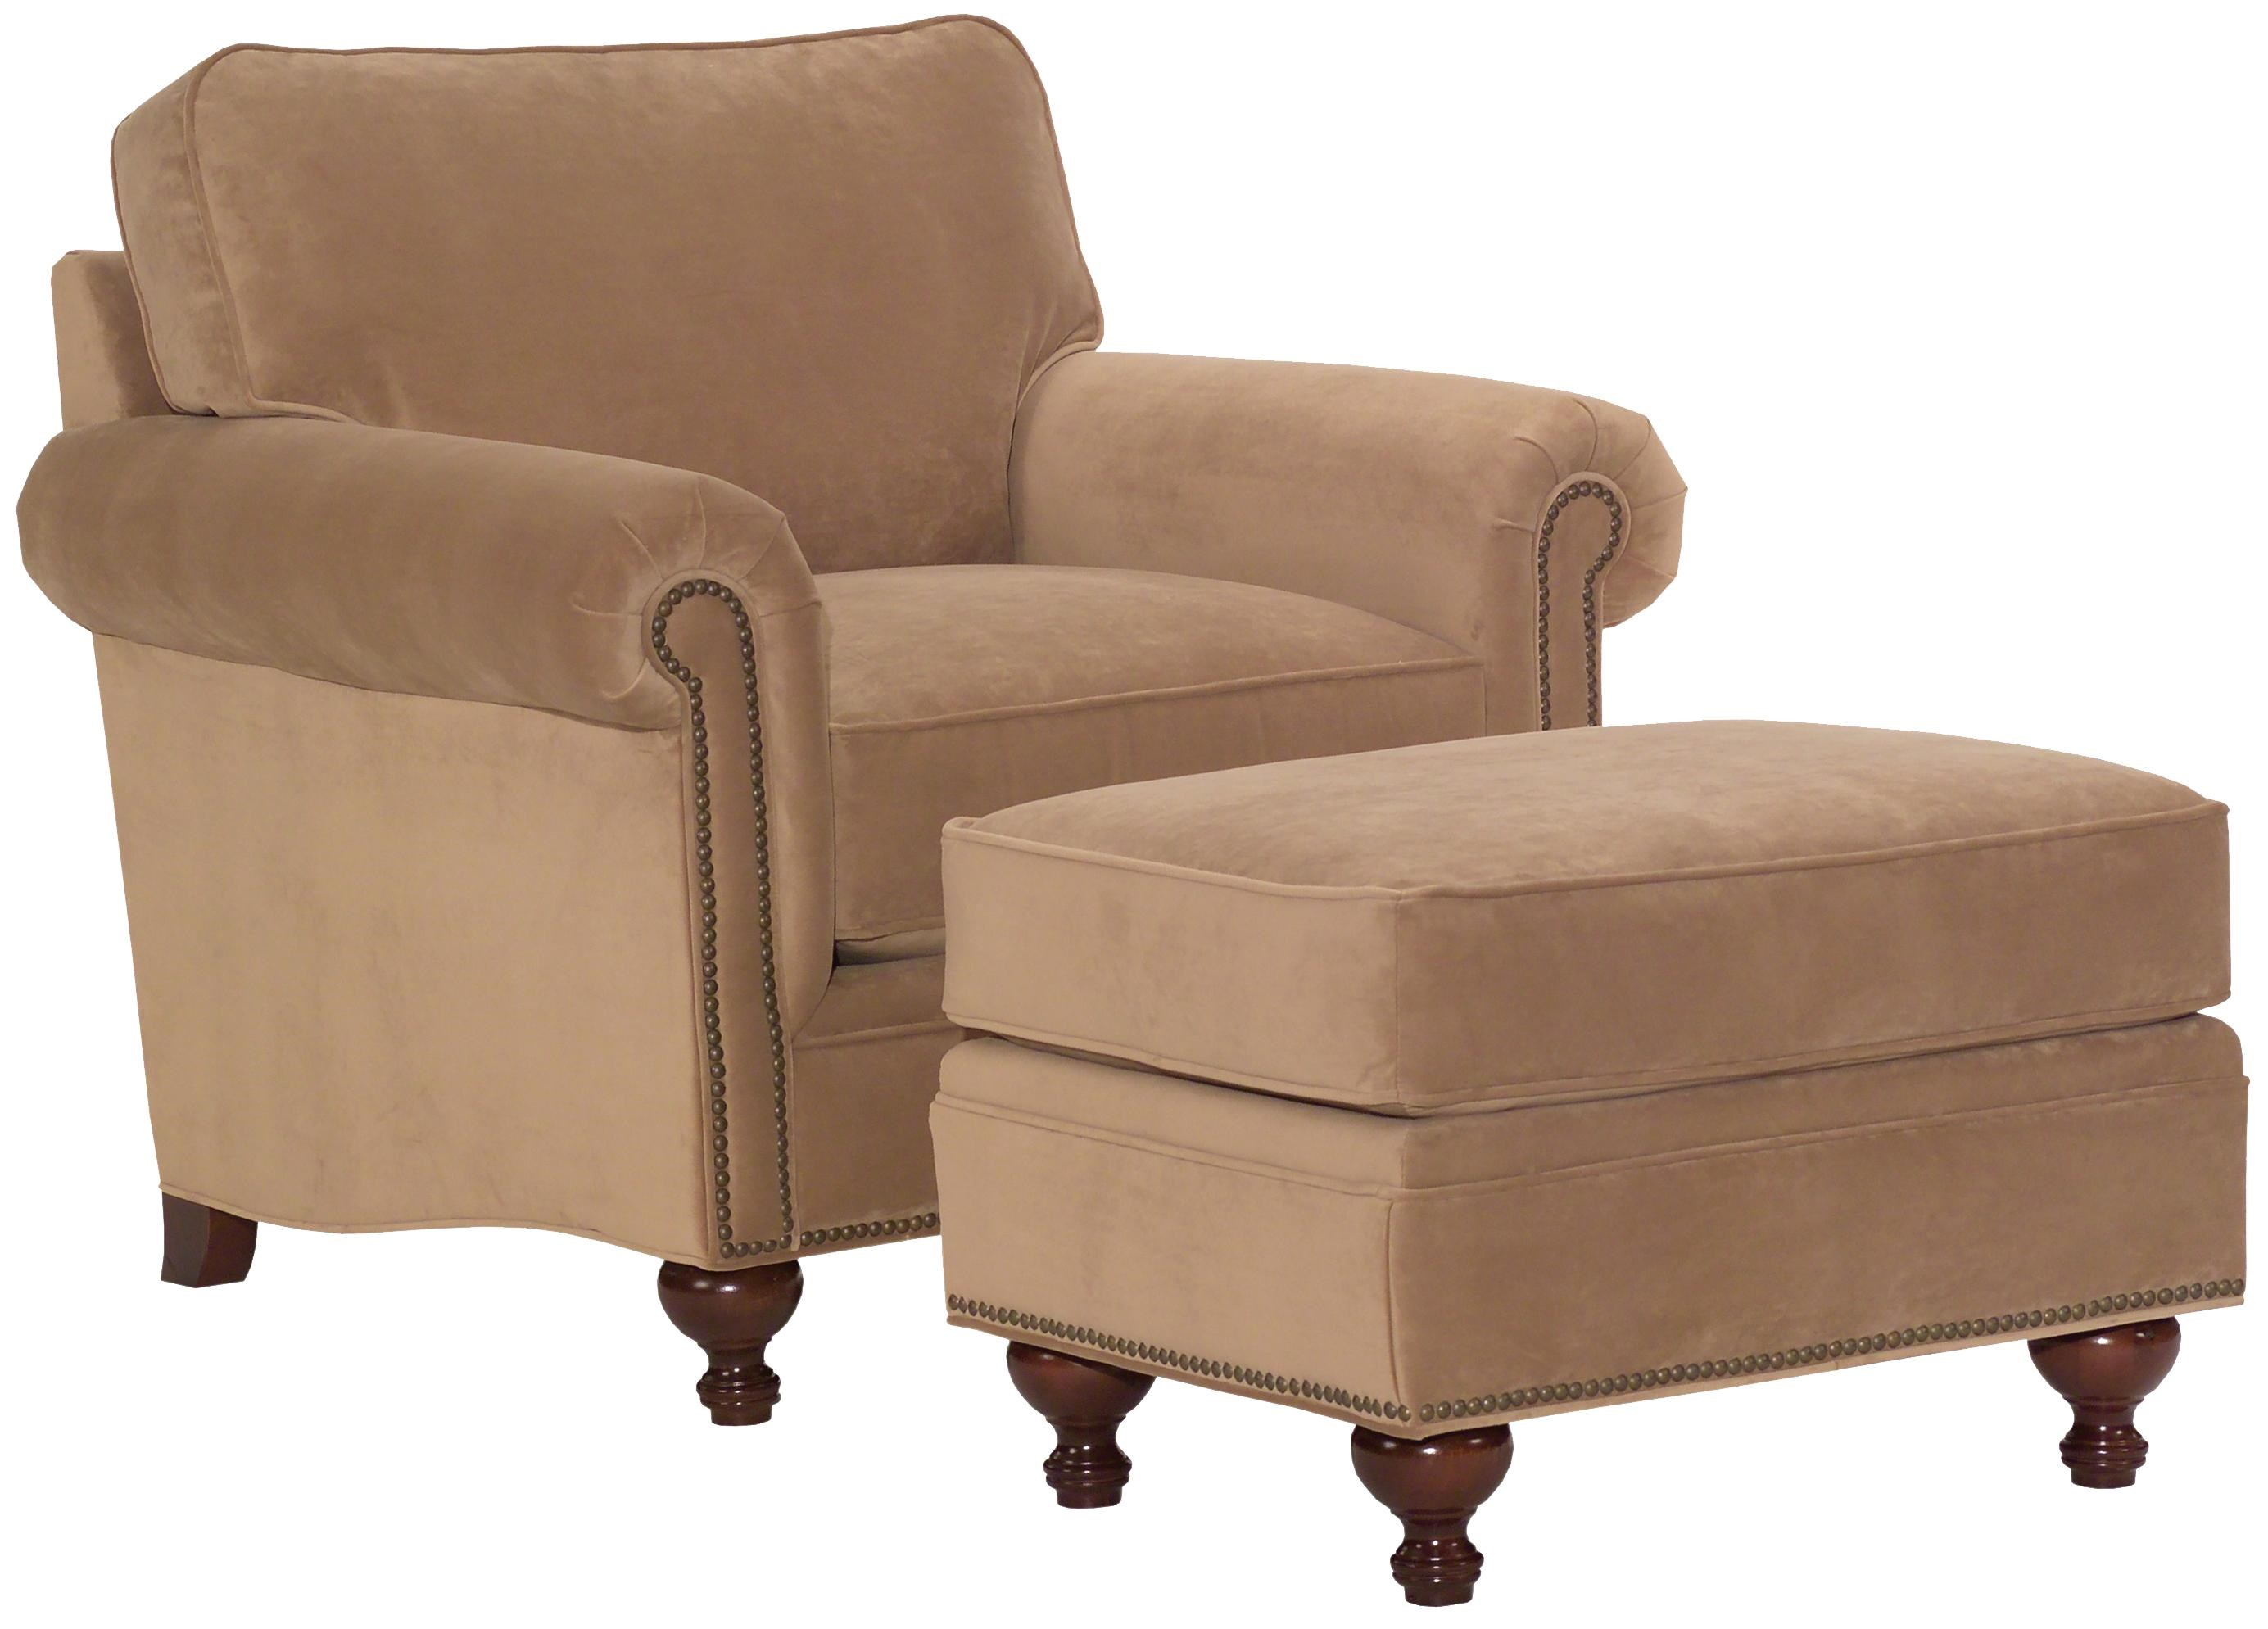 broyhill furniture harrison traditional style chair and ottoman lafayette abbeville franklin louisiana